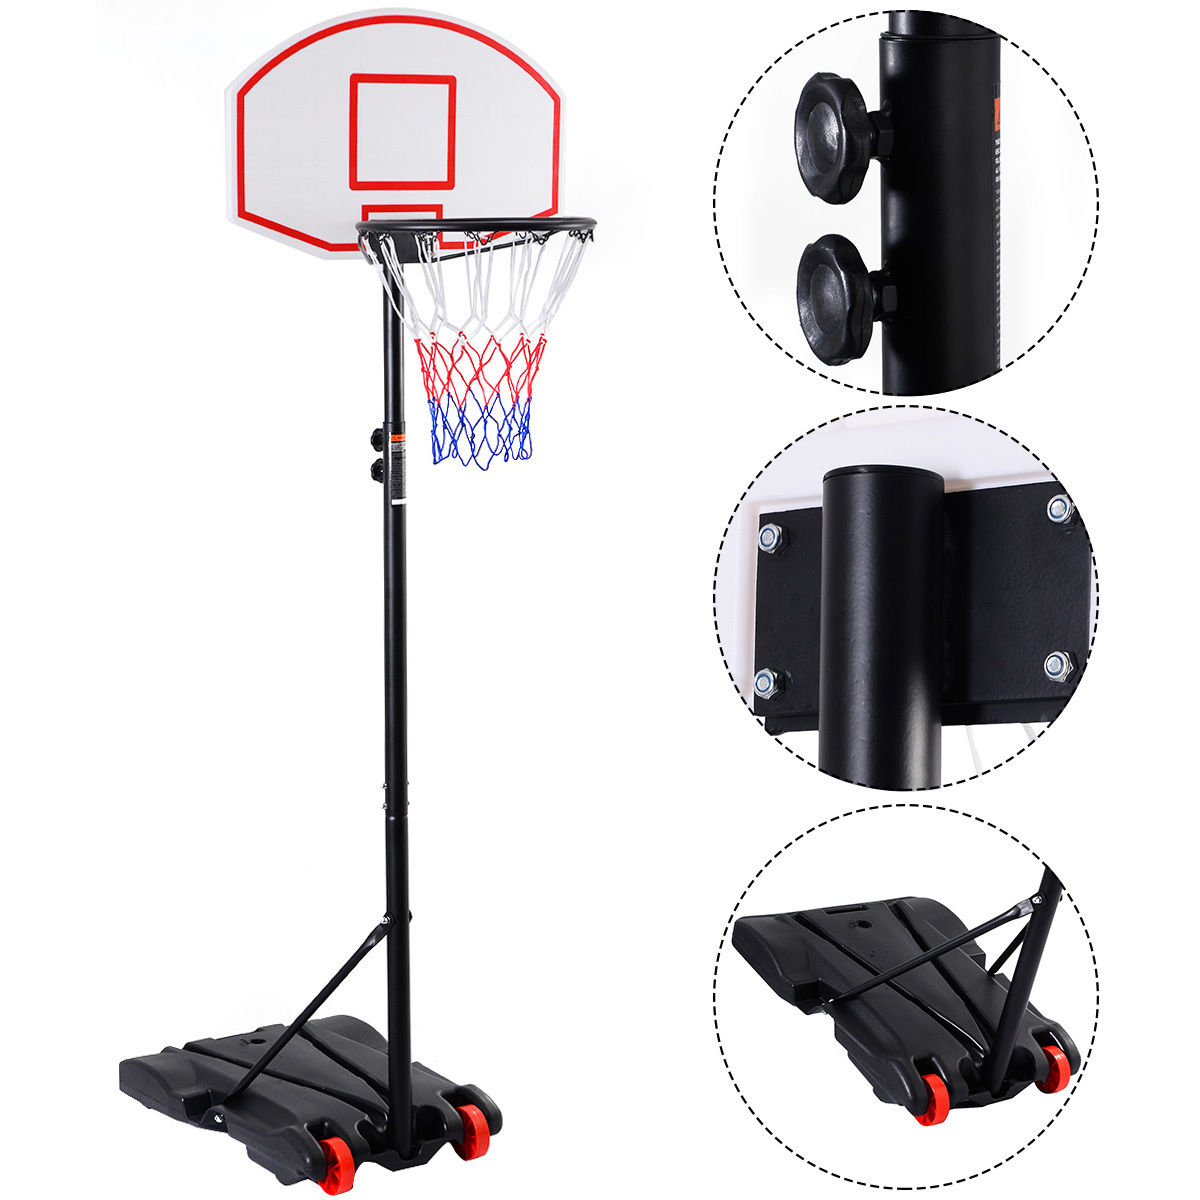 Costway Adjustable Basketball Hoop System Stand Kid Indoor Outdoor Net Goal w  Wheels by Costway